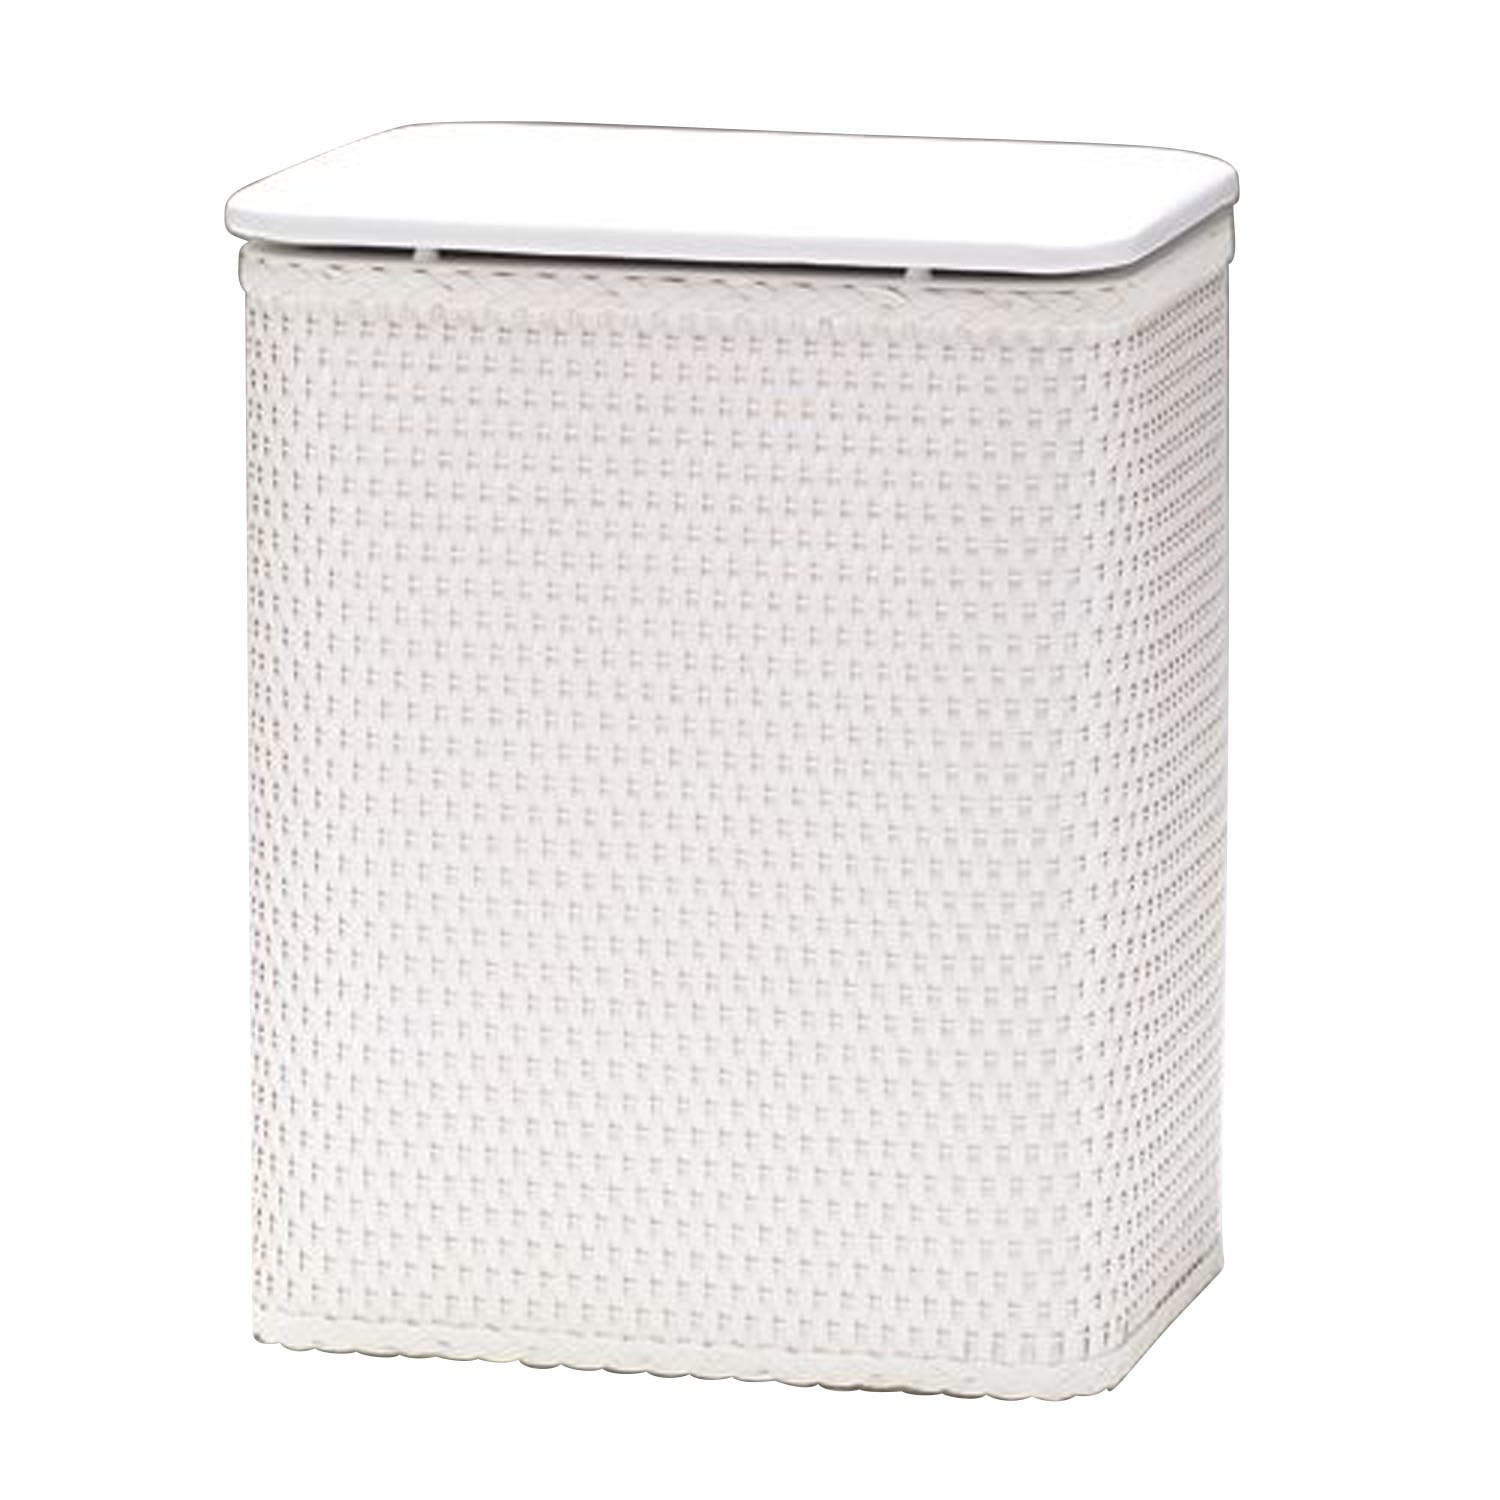 Redmon Home Nursery Hamper 59f98c232a00e45ab83da955